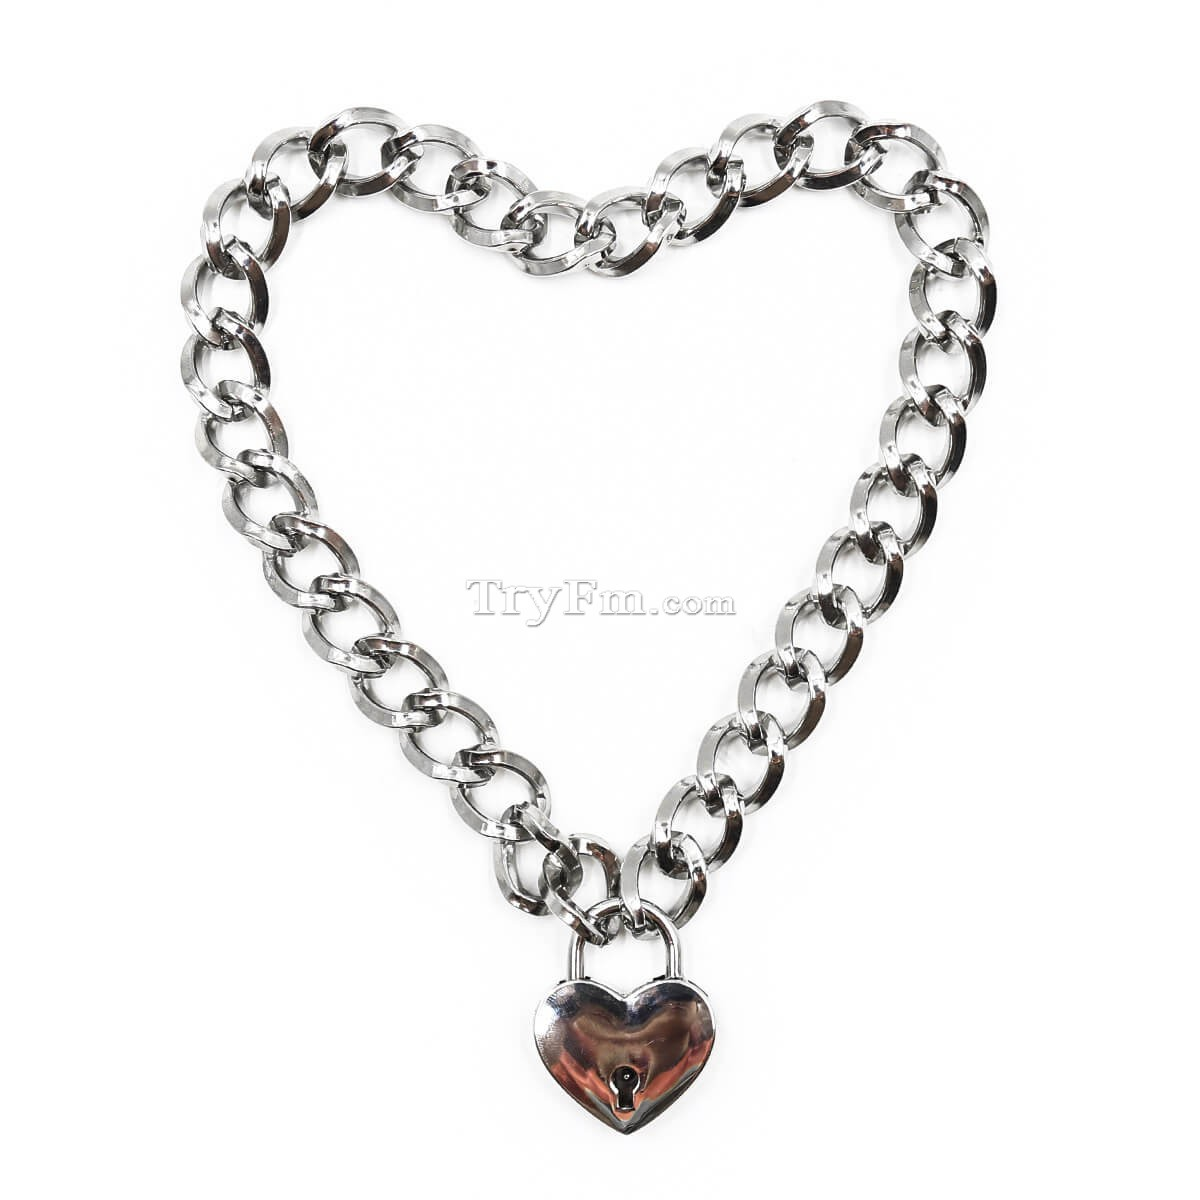 4-silver-chain-lock-collar2.jpg